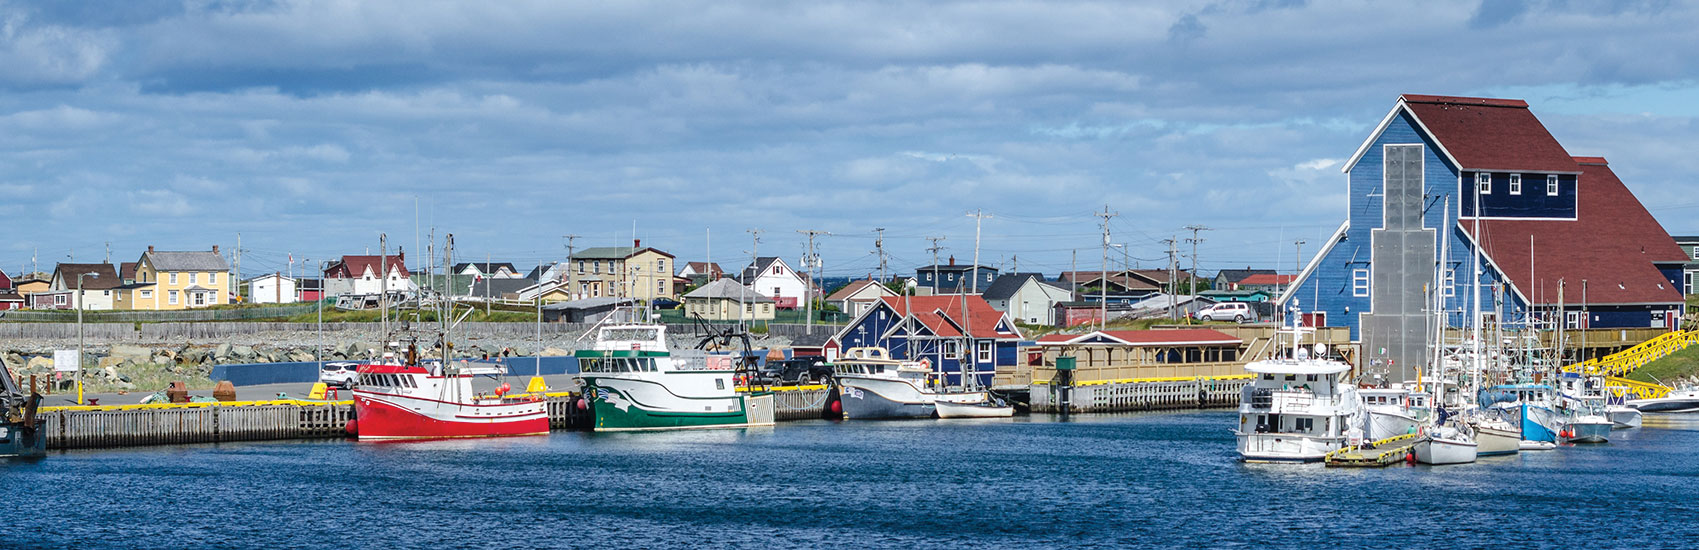 Scenery, History and Fun Await in Newfoundland 2